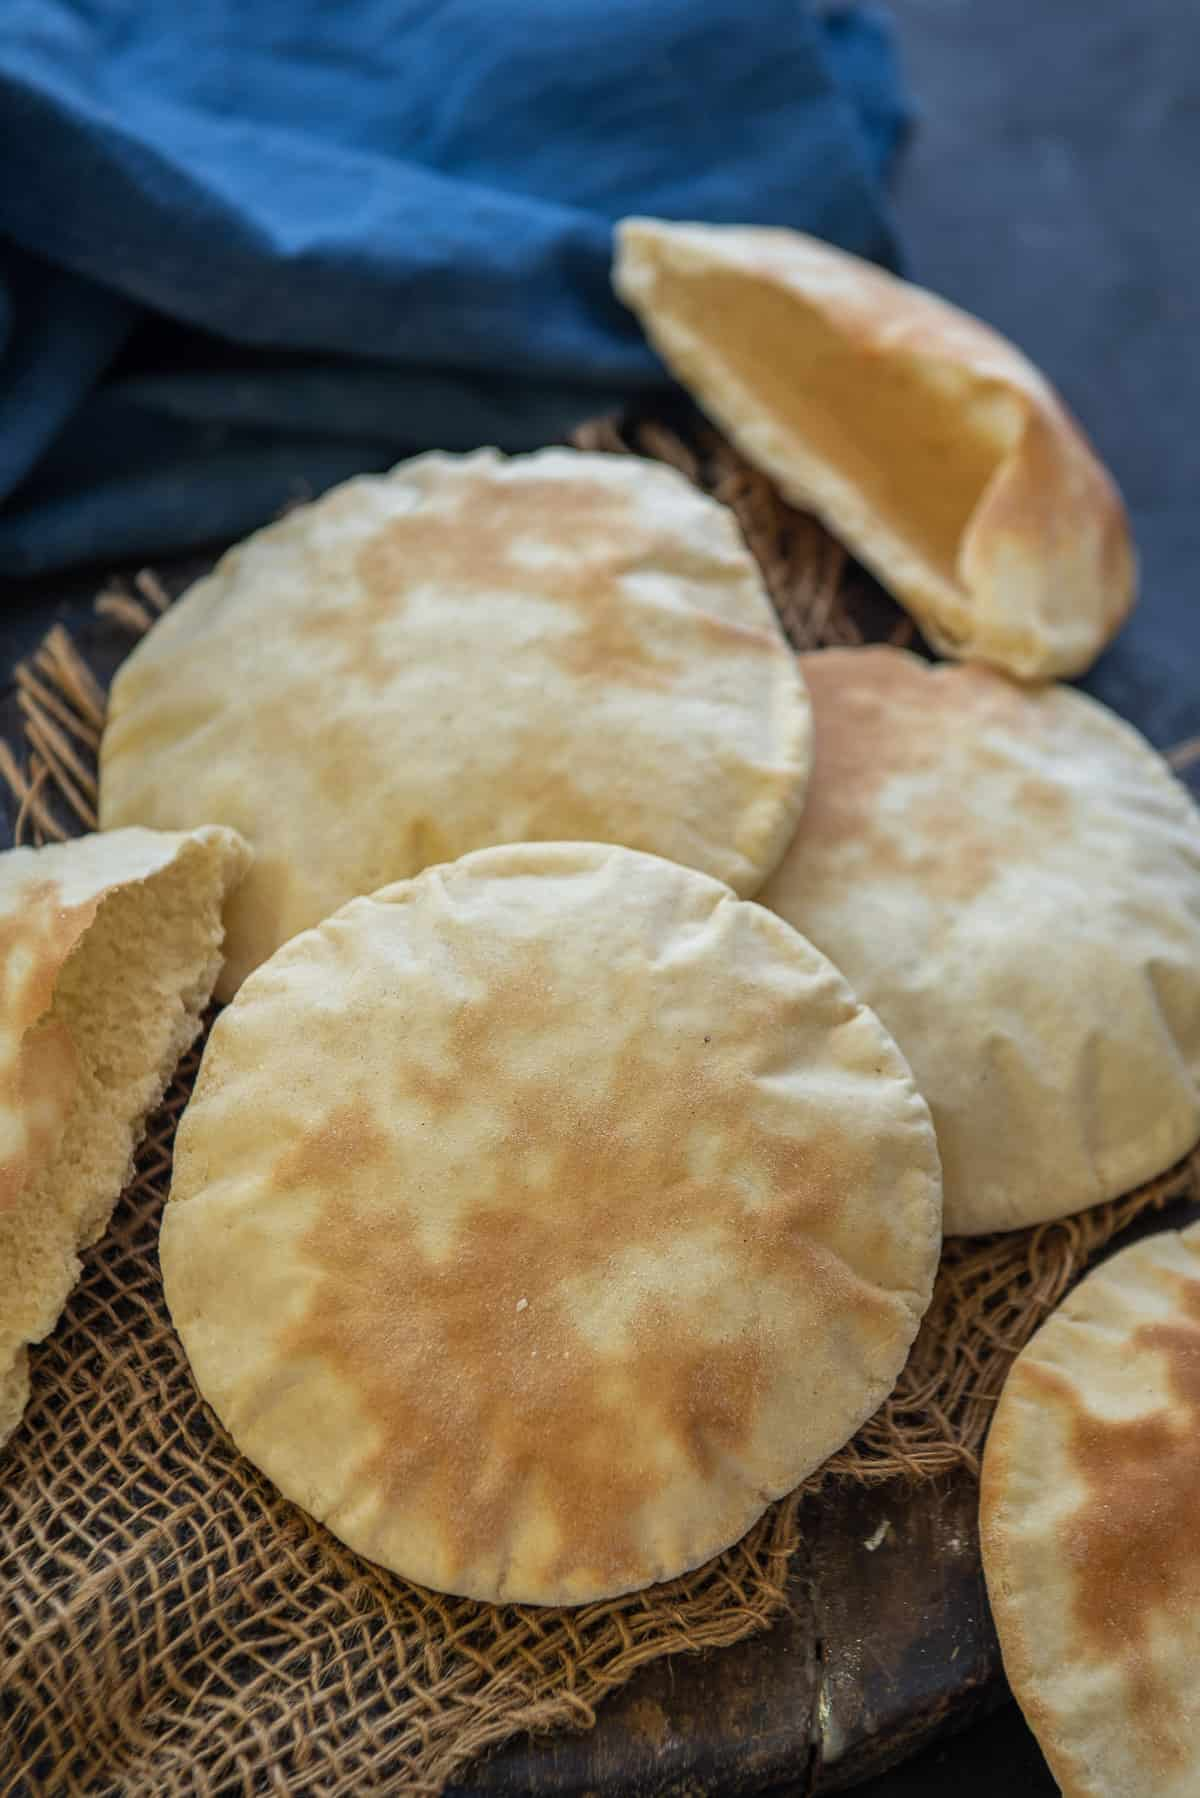 Pita bread served on a plate.